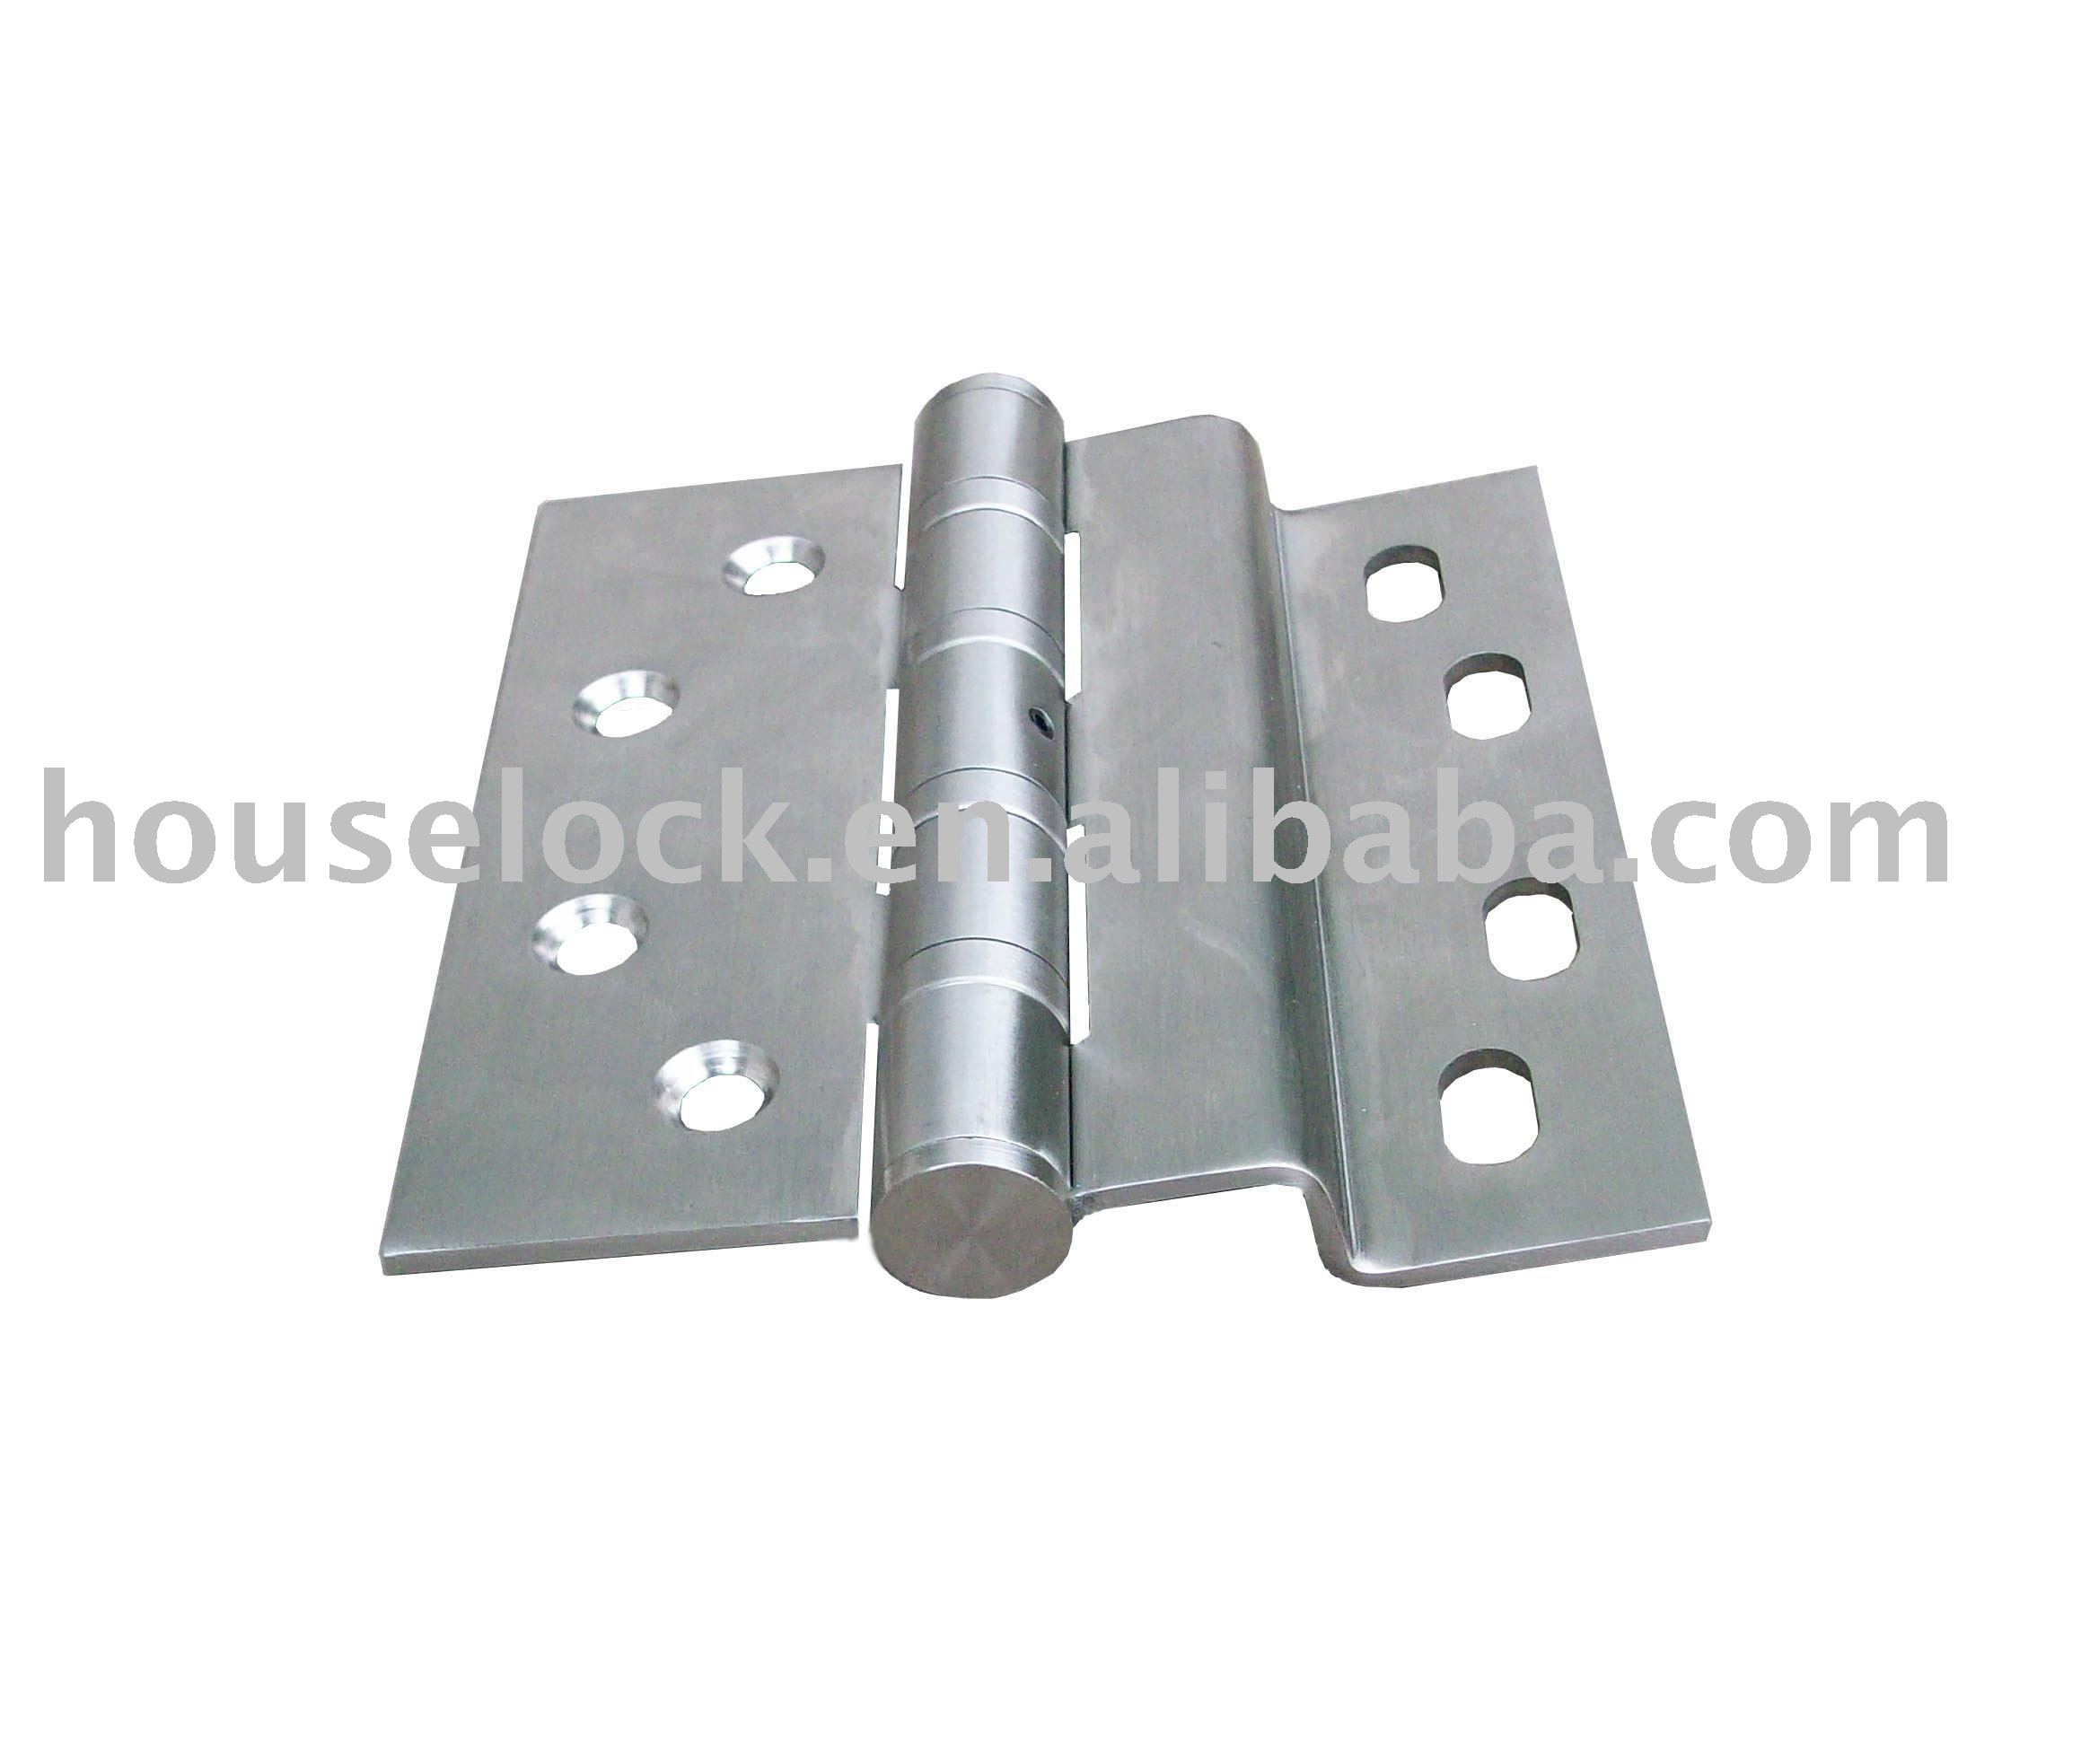 Buy stainless steel fire proof cabinet cranked hinge sus304 stainless